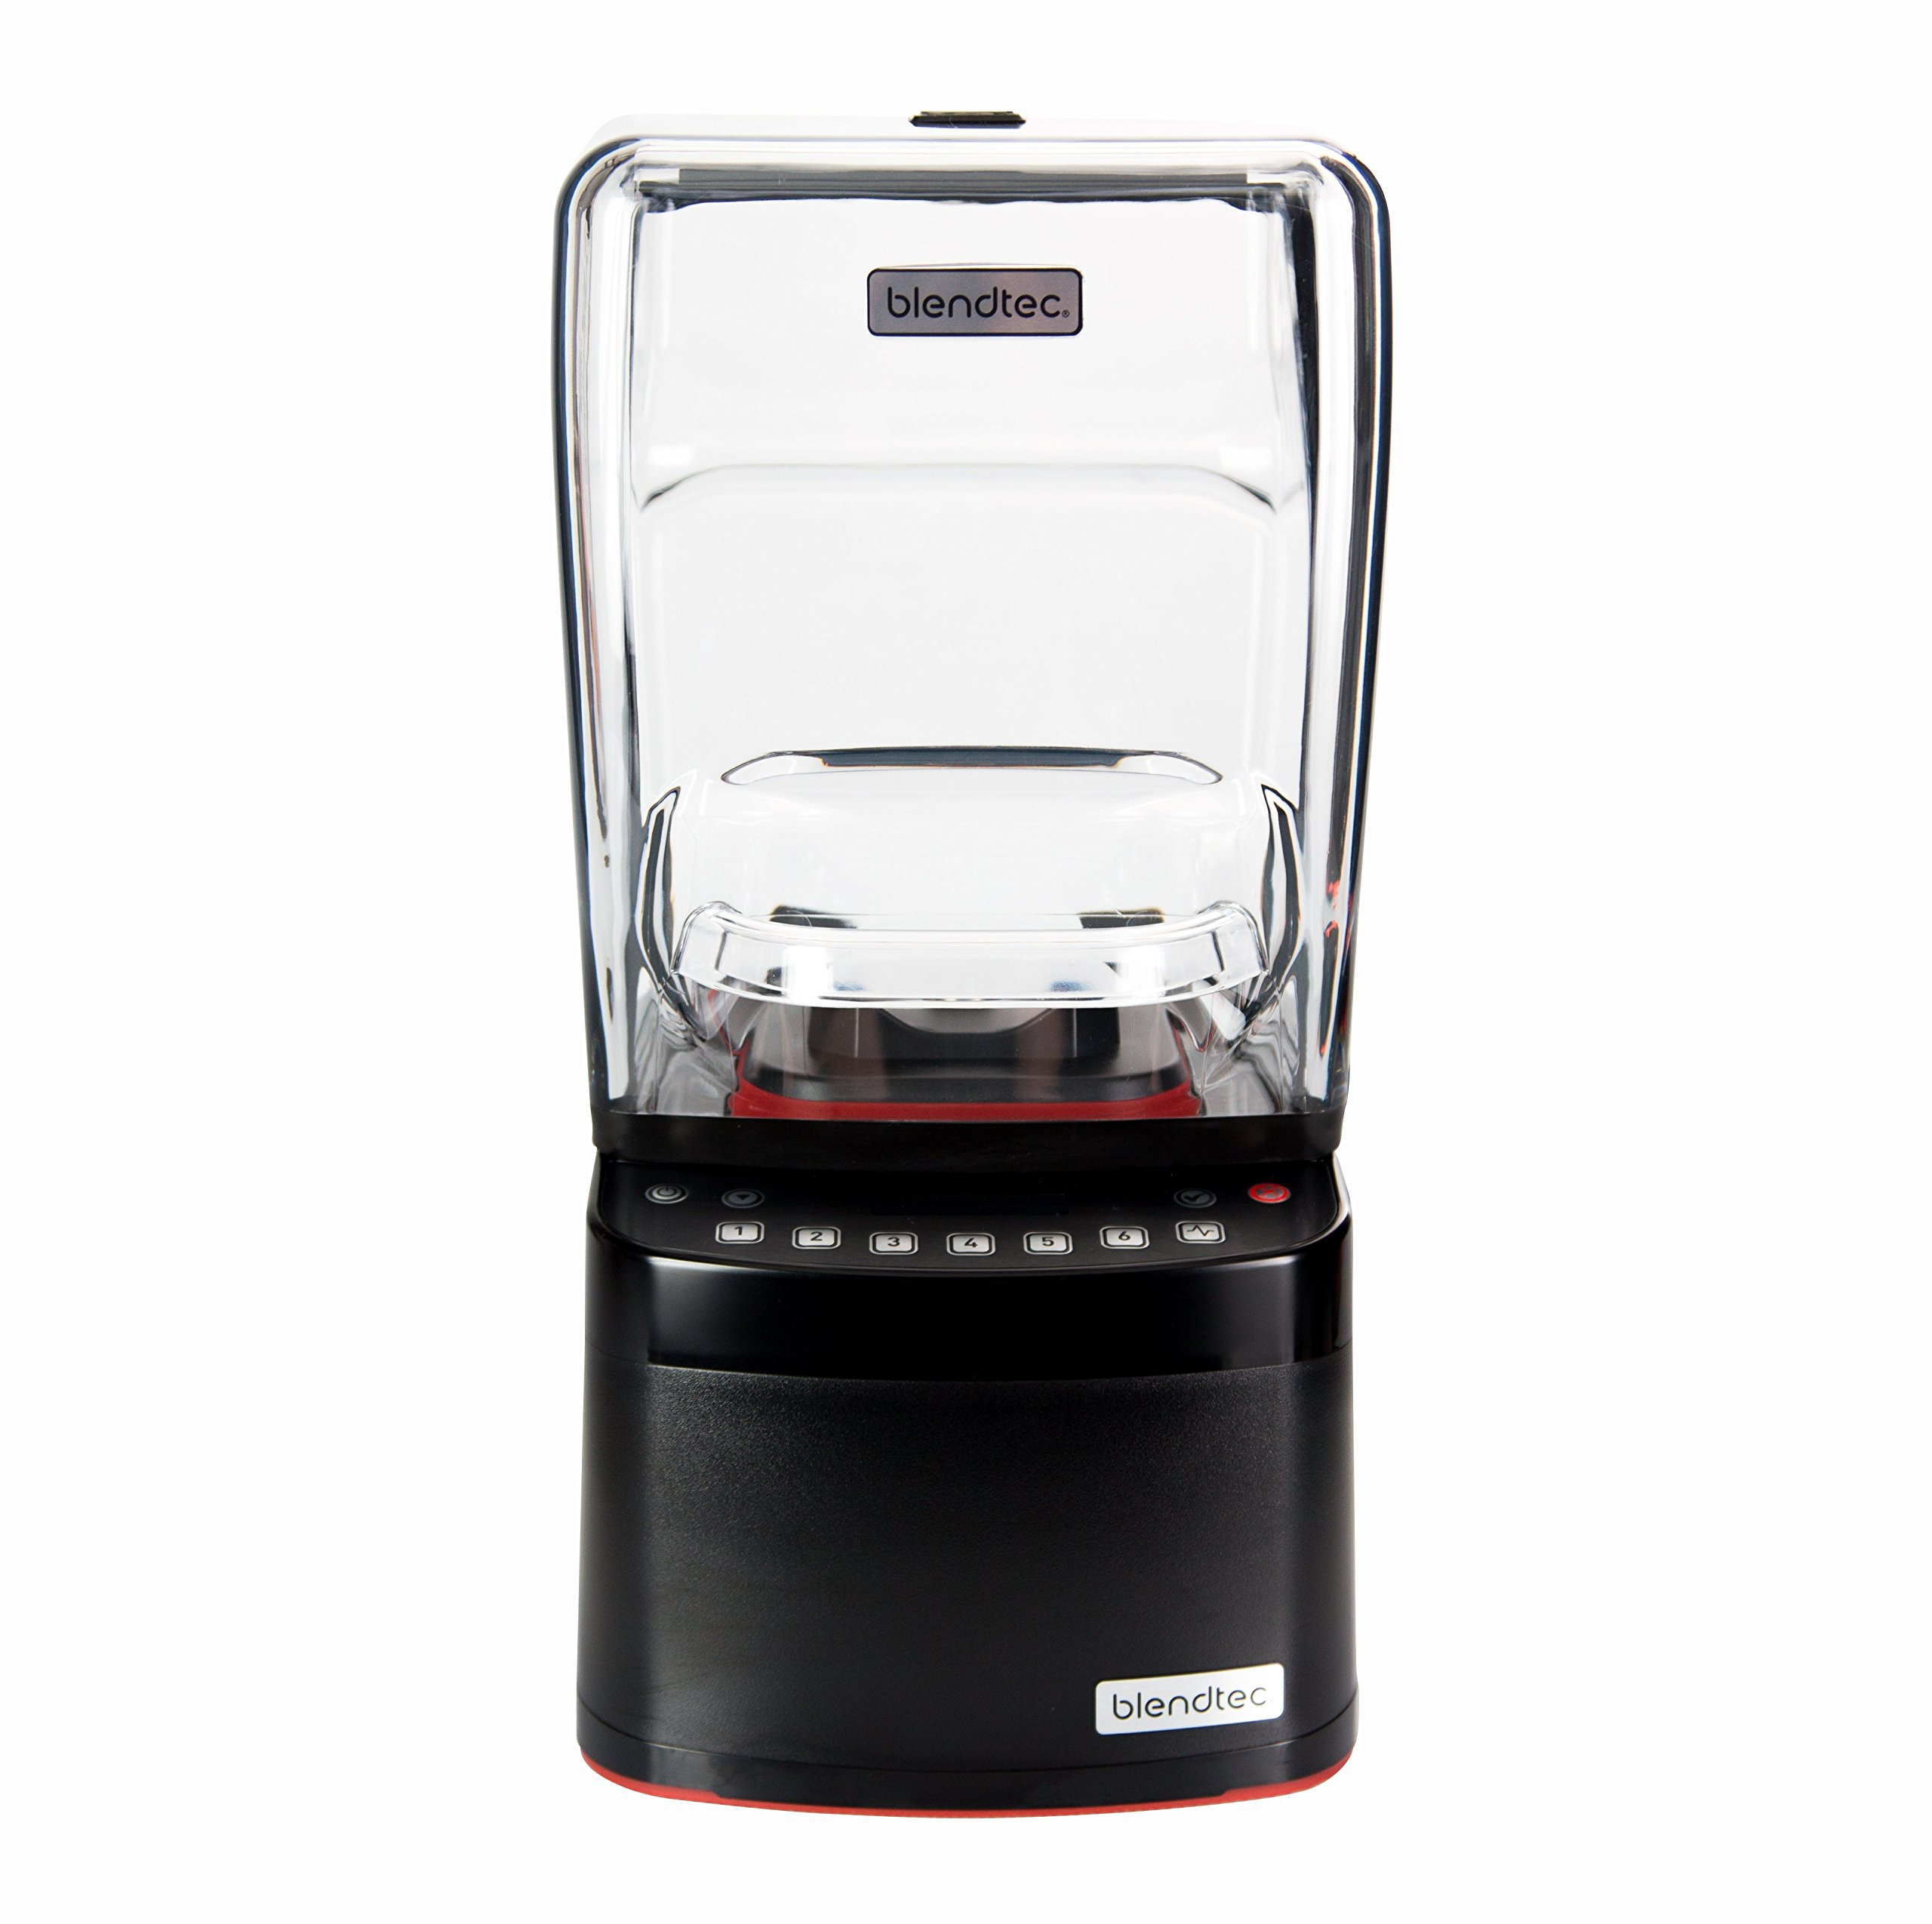 Blendtec S885C2901-B1GB1D Stealth 885 Commercial Blender